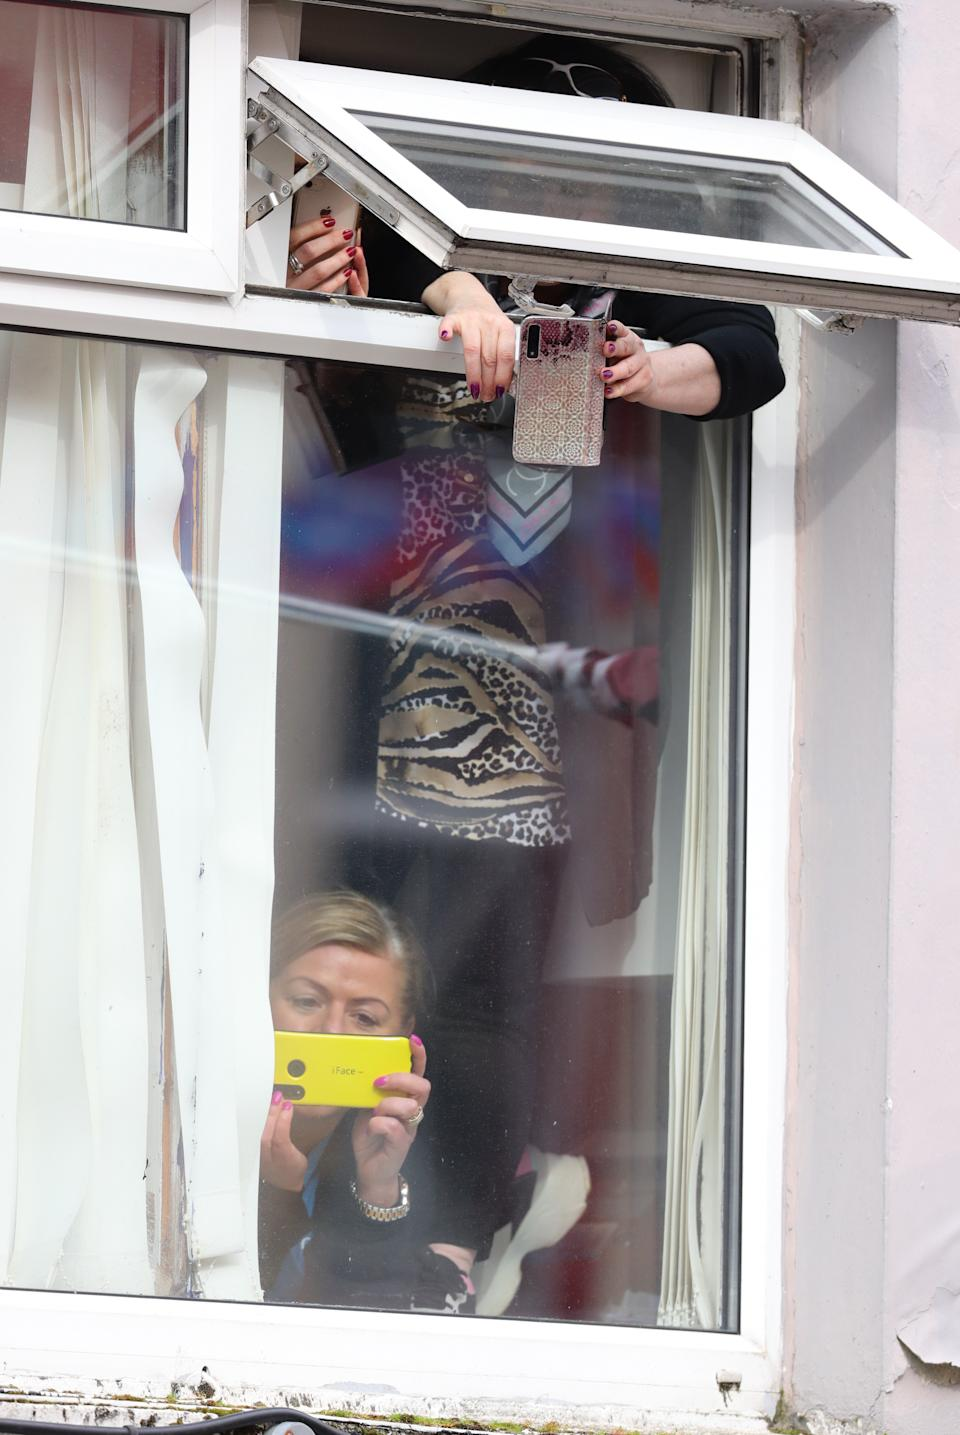 People look out of a window as the Duchess of Cambridge meets local Galwegians after a visit to a traditional Irish pub in Galway city centre on the third day of her visit to the Republic of Ireland.